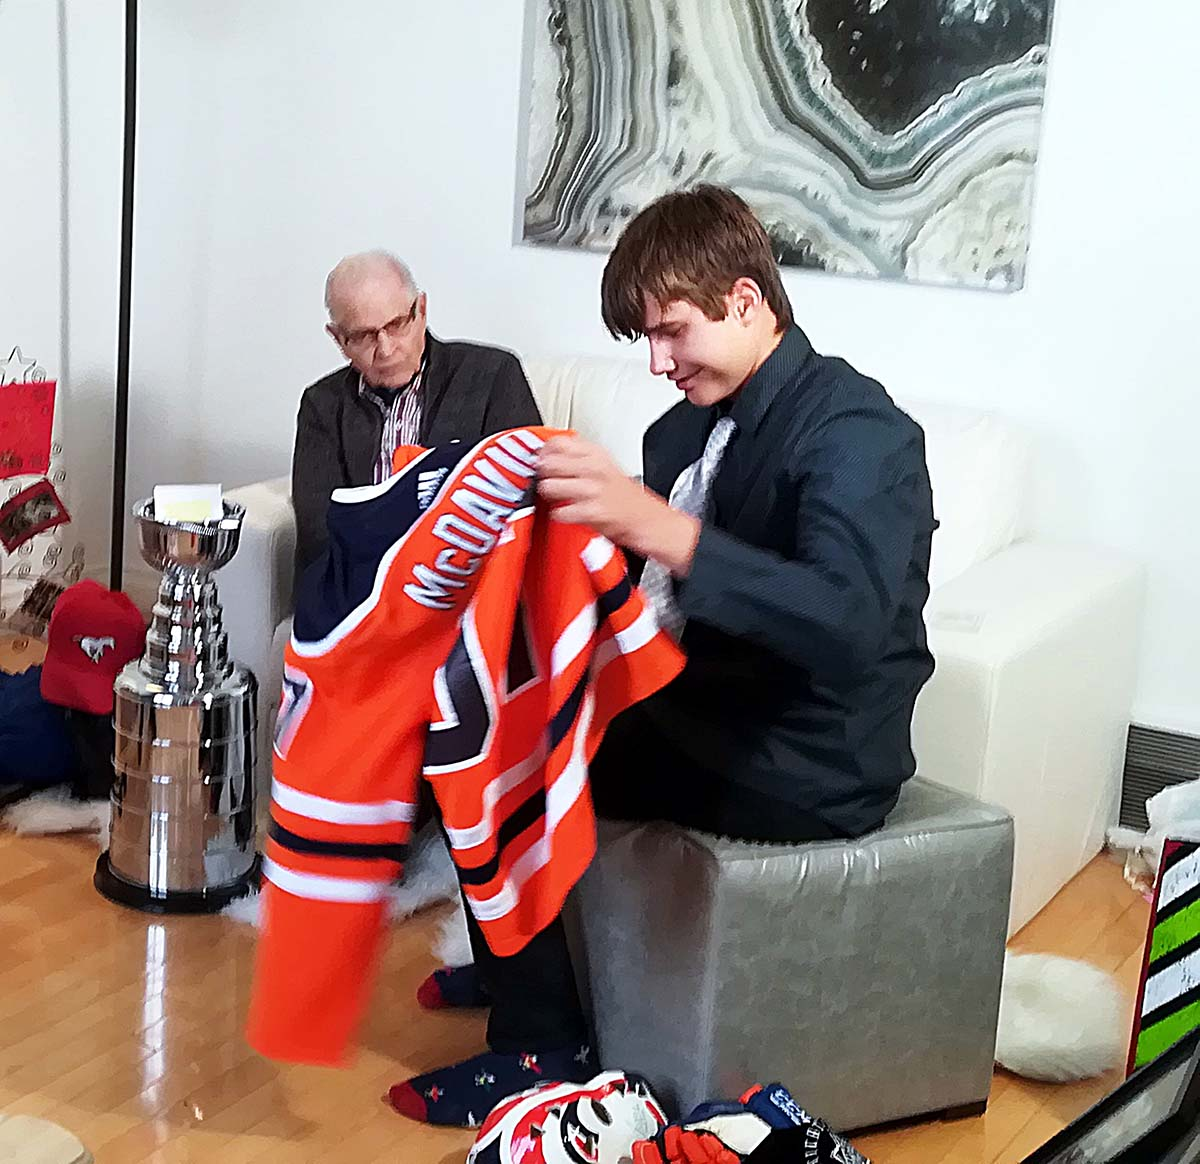 Peyton unveils his most prized collectible and keepsake – his Connor 'McDavid' NHL Oilers jersey.